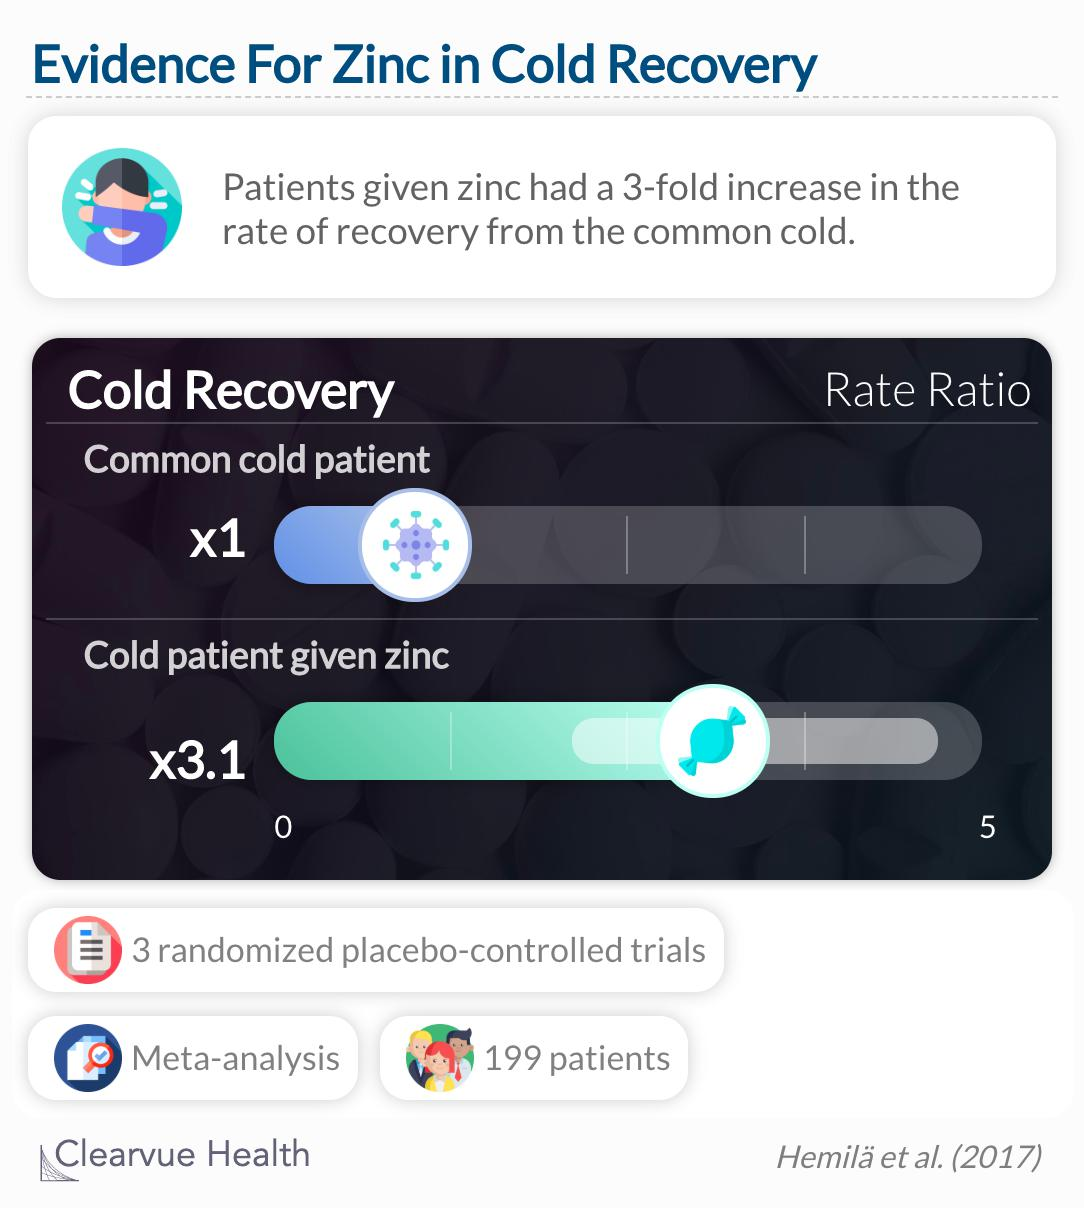 Patients given zinc had a 3-fold increase in the rate of recovery from the common cold.